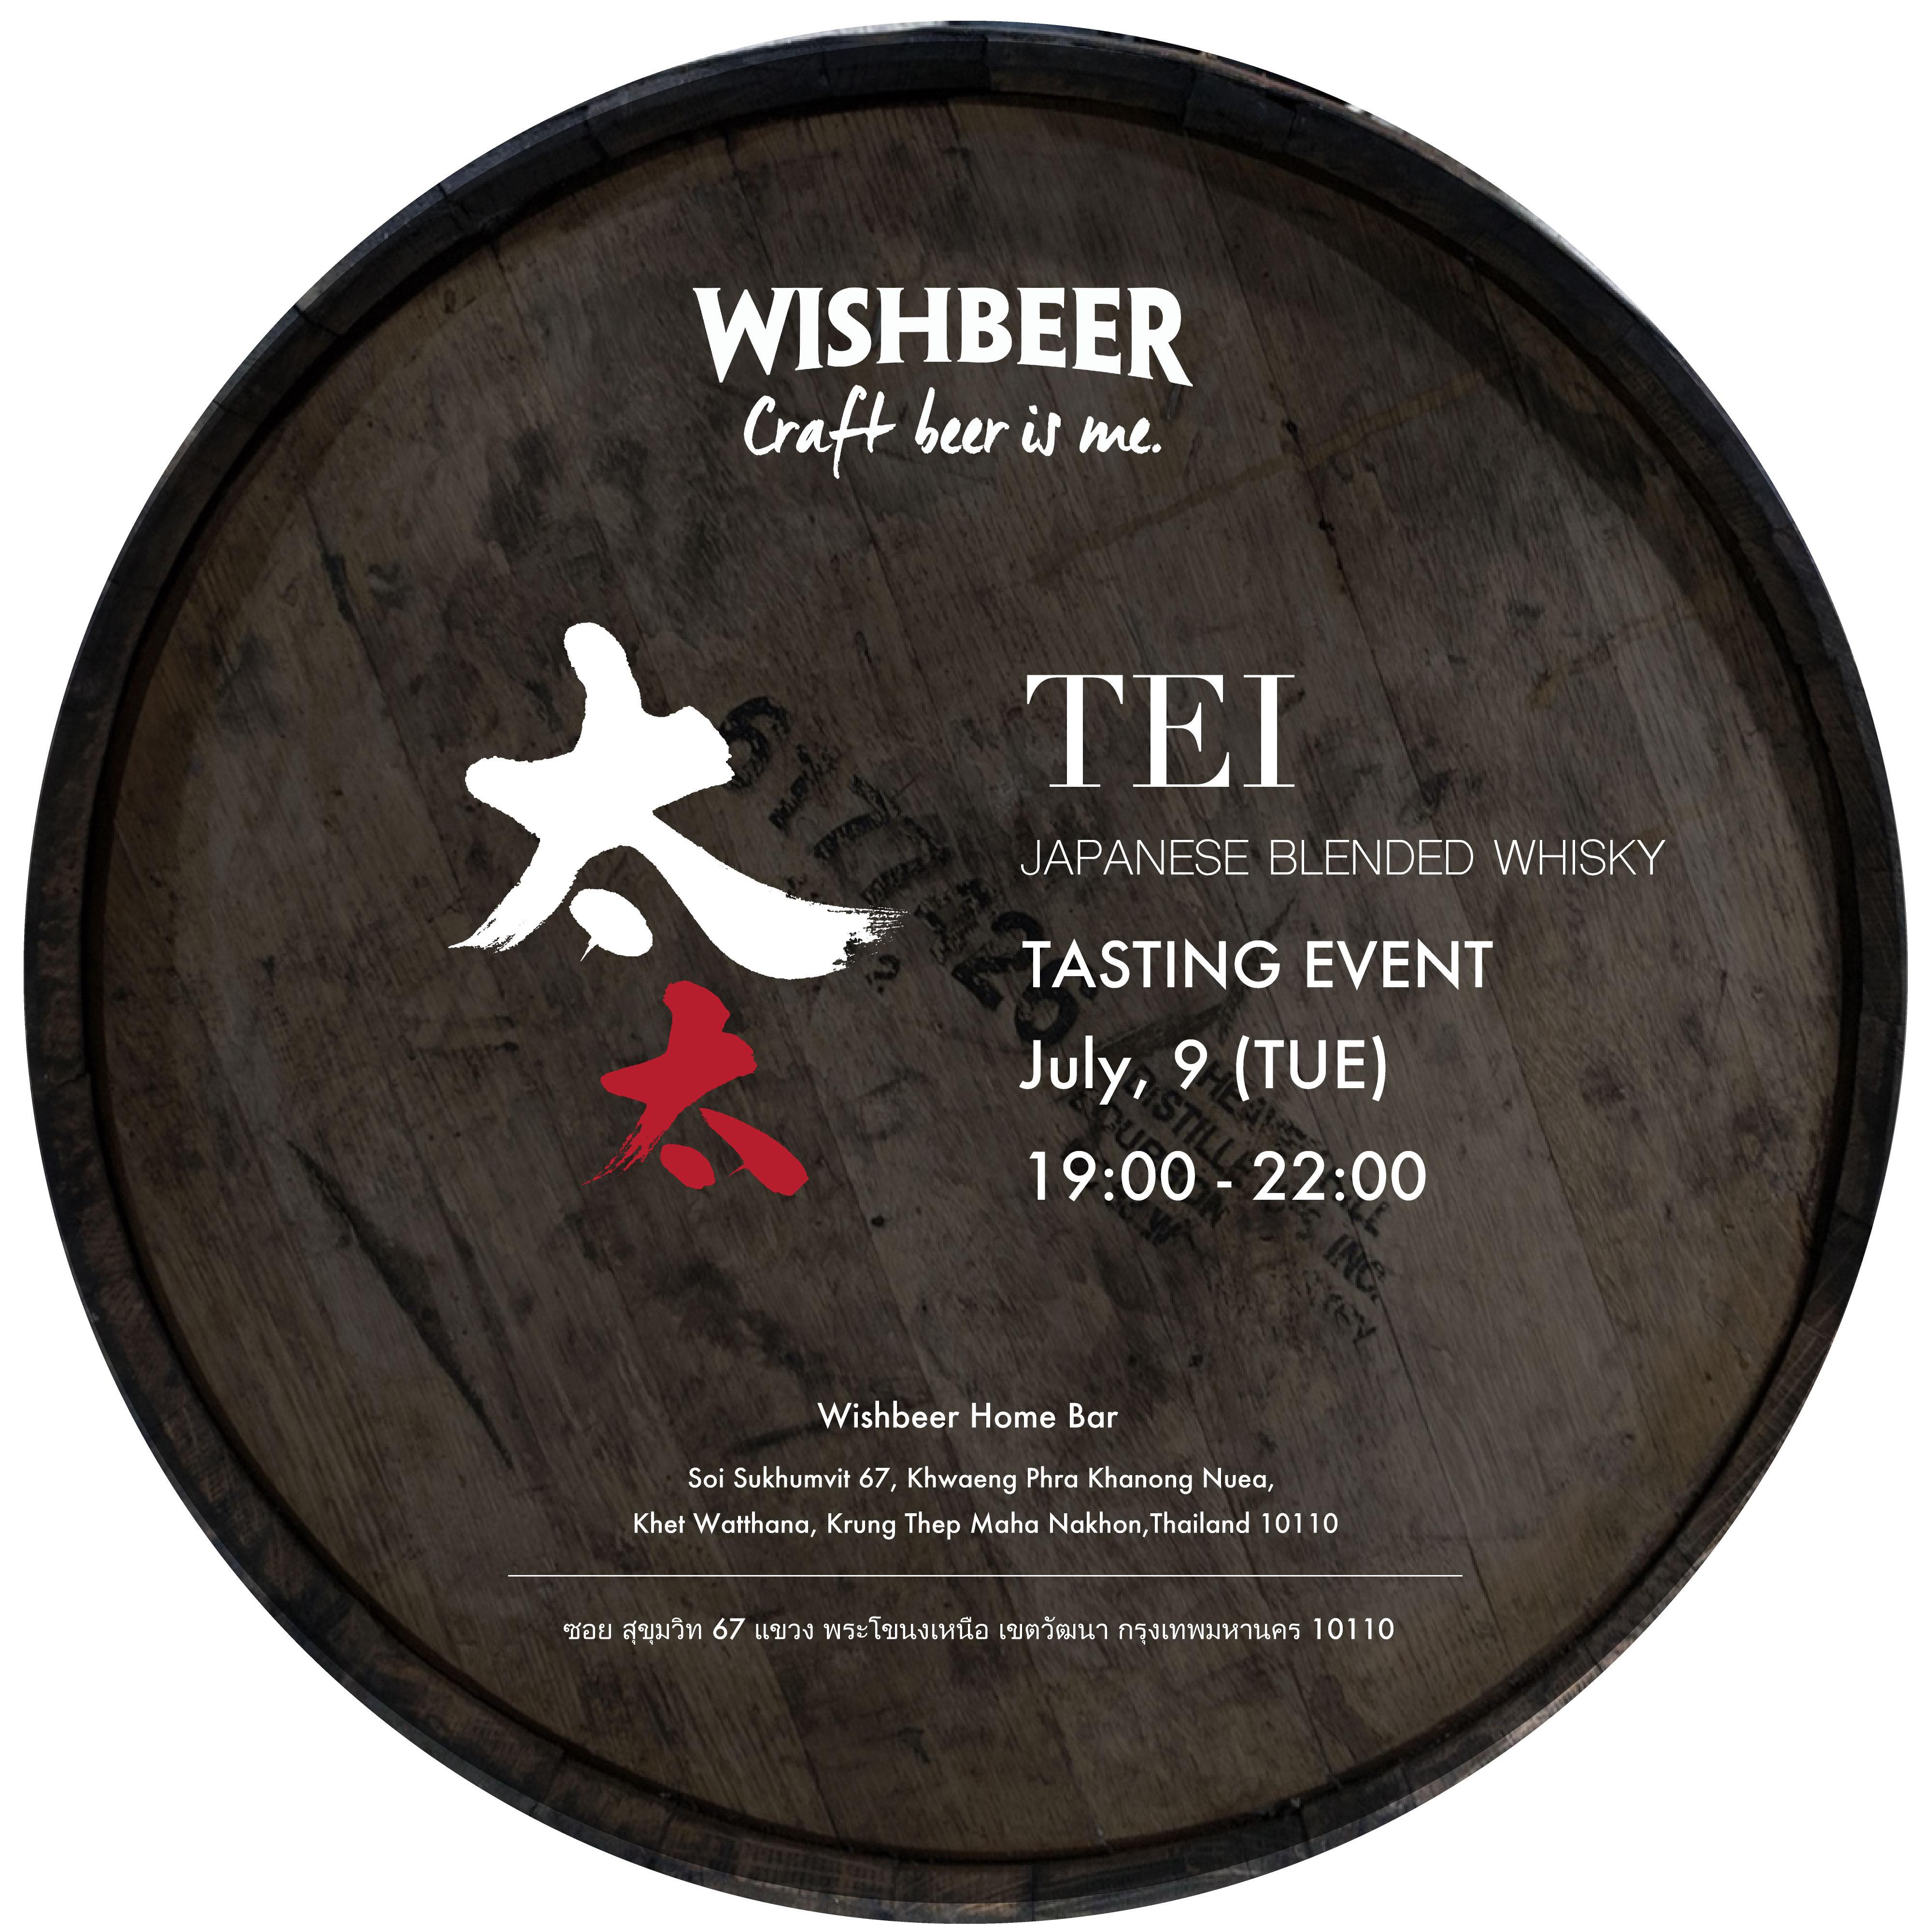 Limited Free Japanese Whisky Tasting 7pm 10pm Wishbeer Home Bar